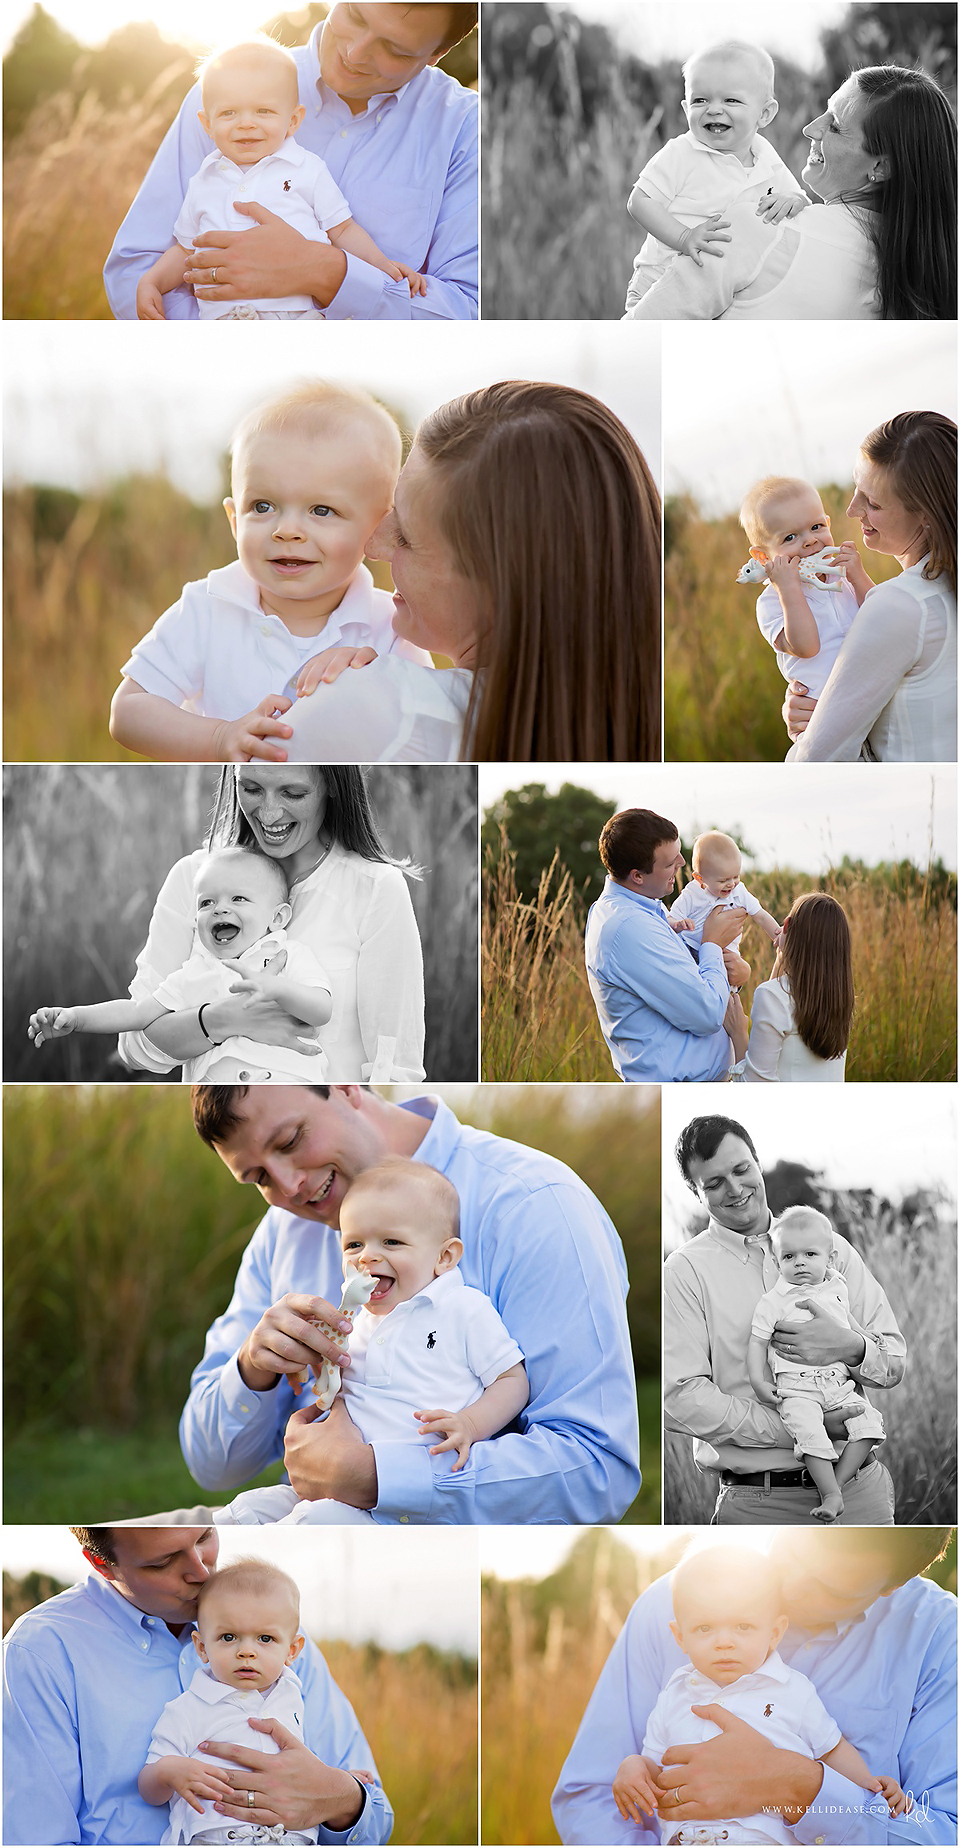 West Hartford Family Photography | CT Children's Photographer | Hartford County Baby Photography | One Year Baby Photography